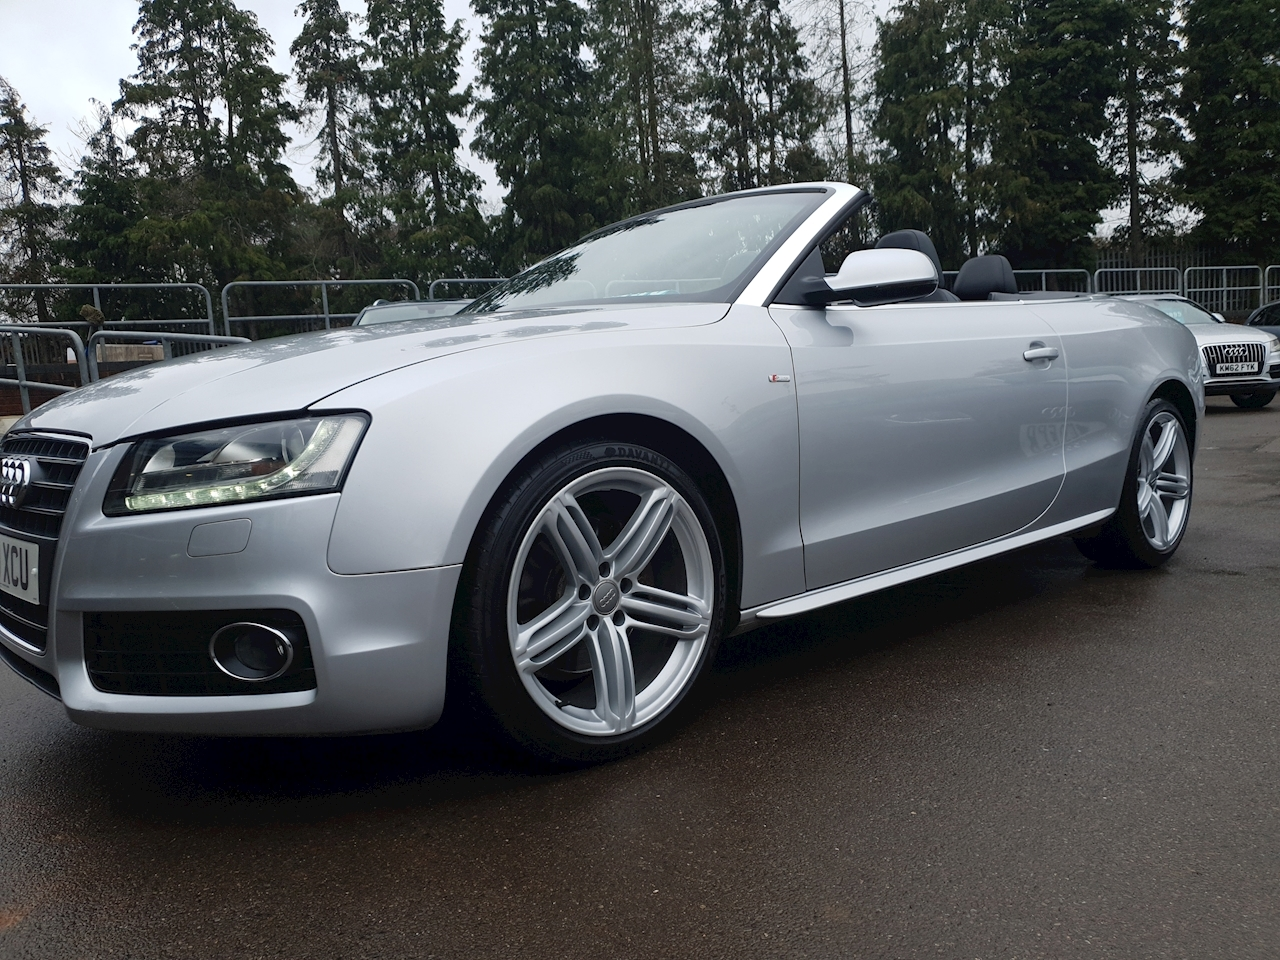 Audi 2.0 TFSI S line  Quattro (£4395 OF FACTORY OPTIONS Cabriolet 2dr Petrol Multitronic (174 g/km, 208 bhp)